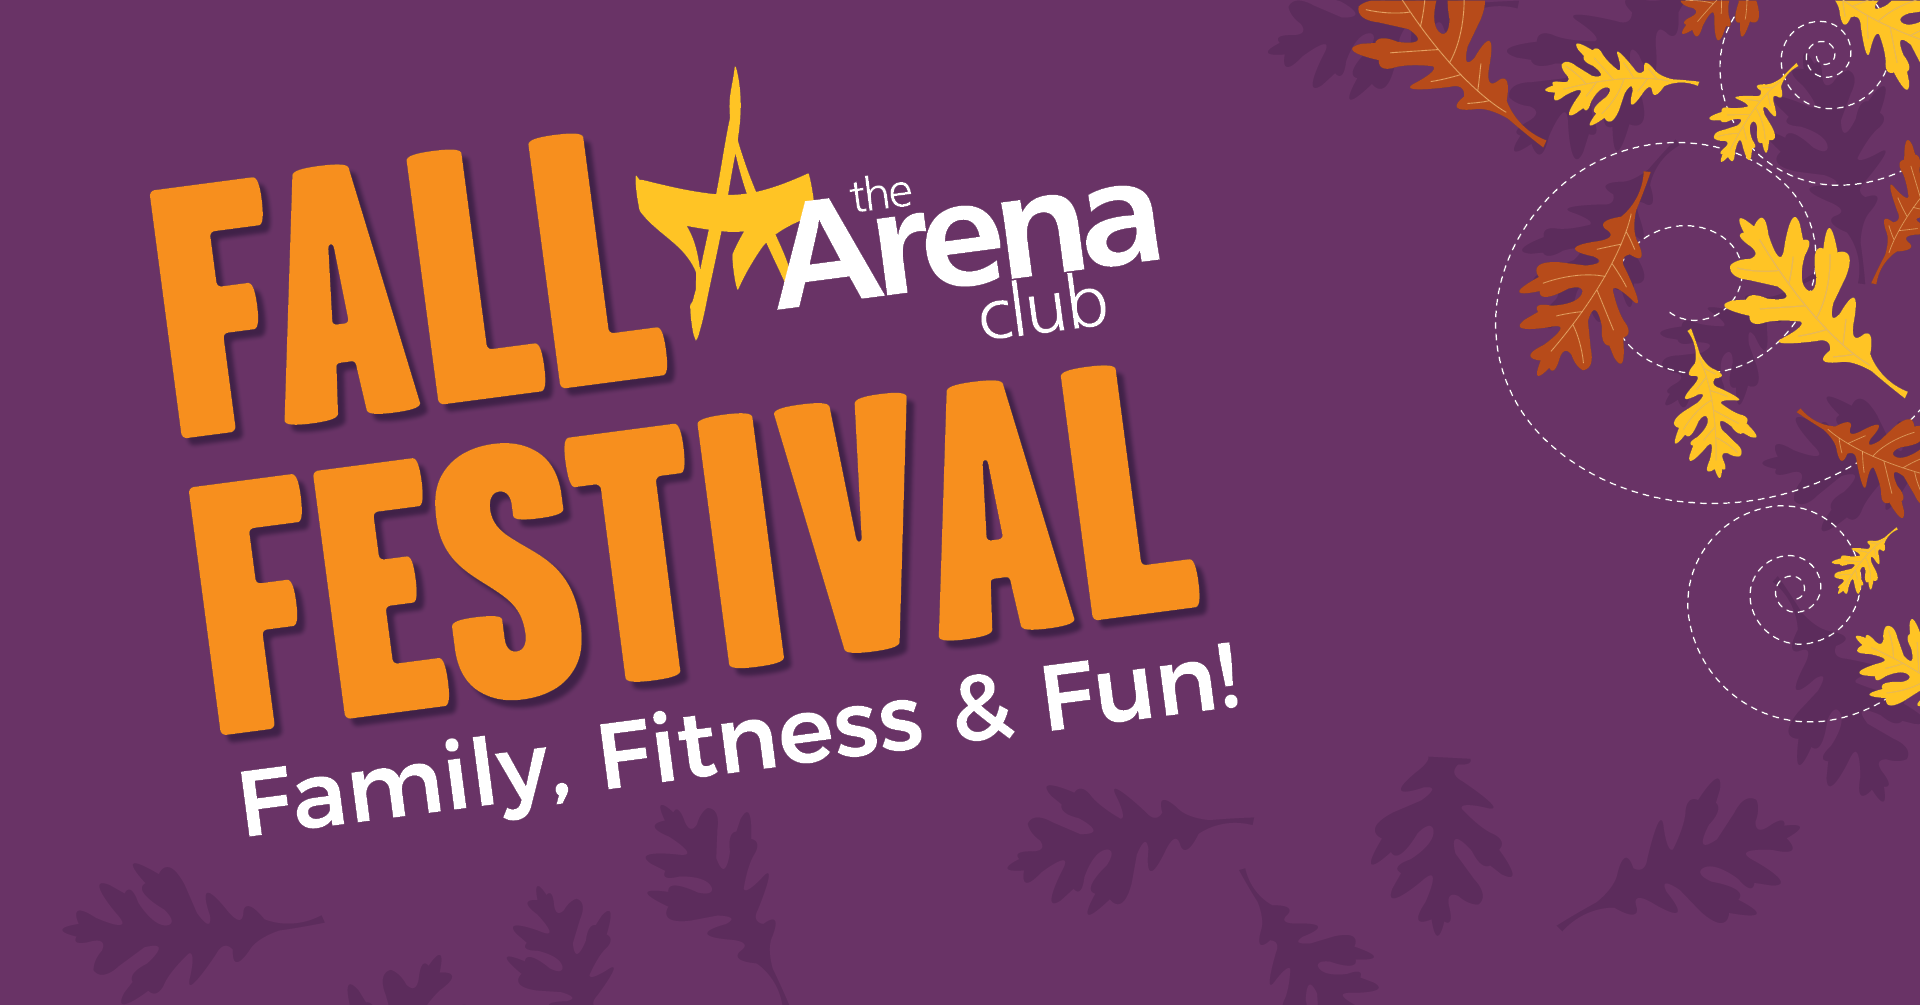 Fall Festival - Facebook EVENT Cover Photo